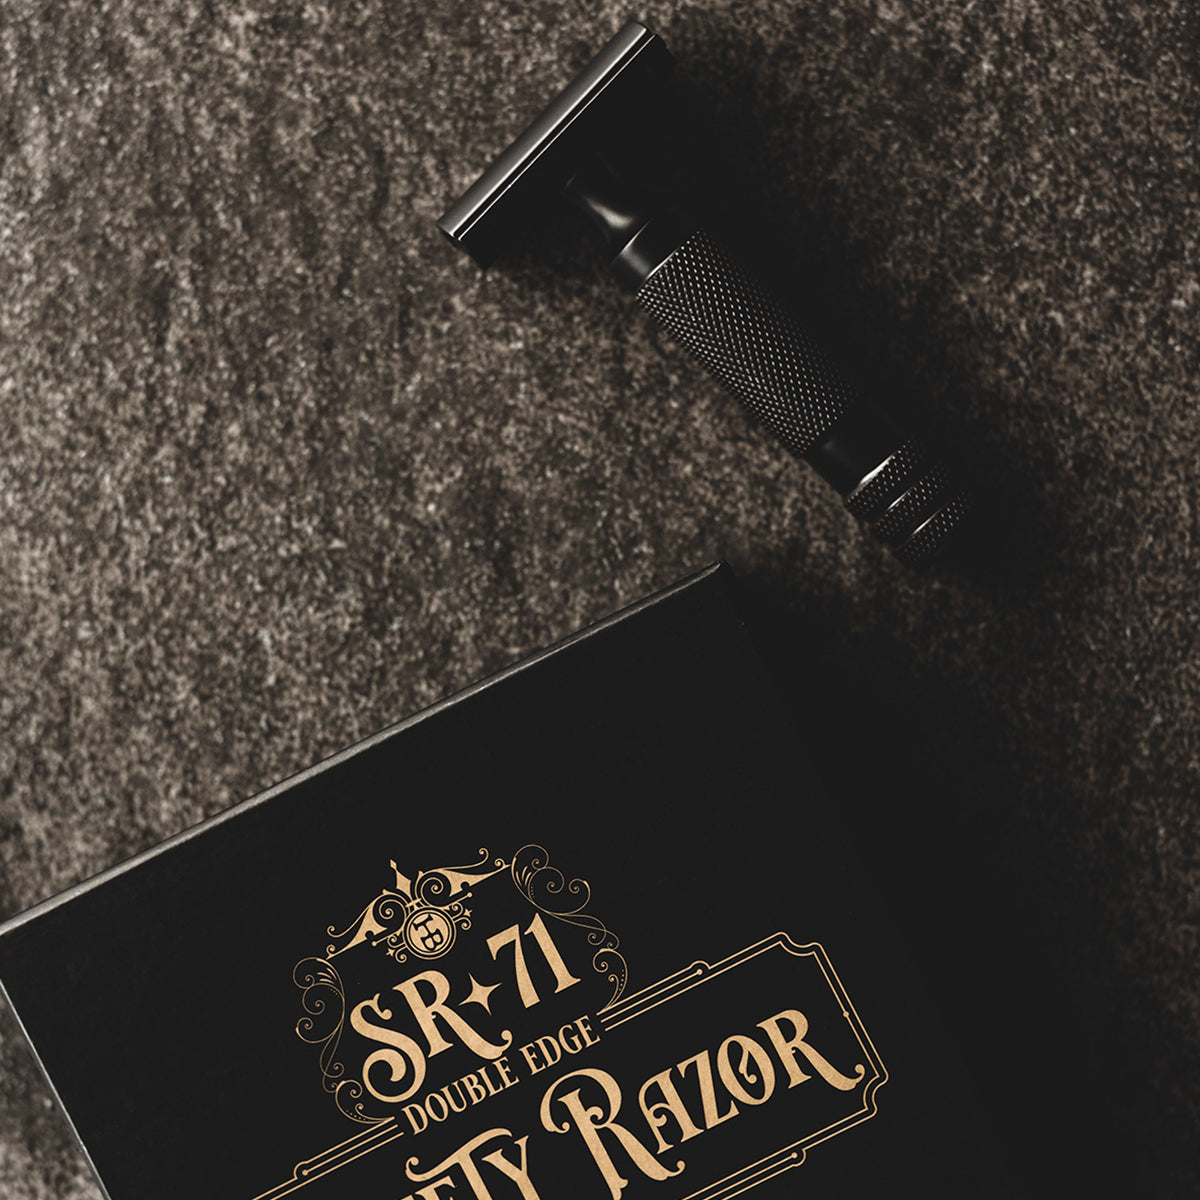 SR-71 Guard Bar Safety Razor